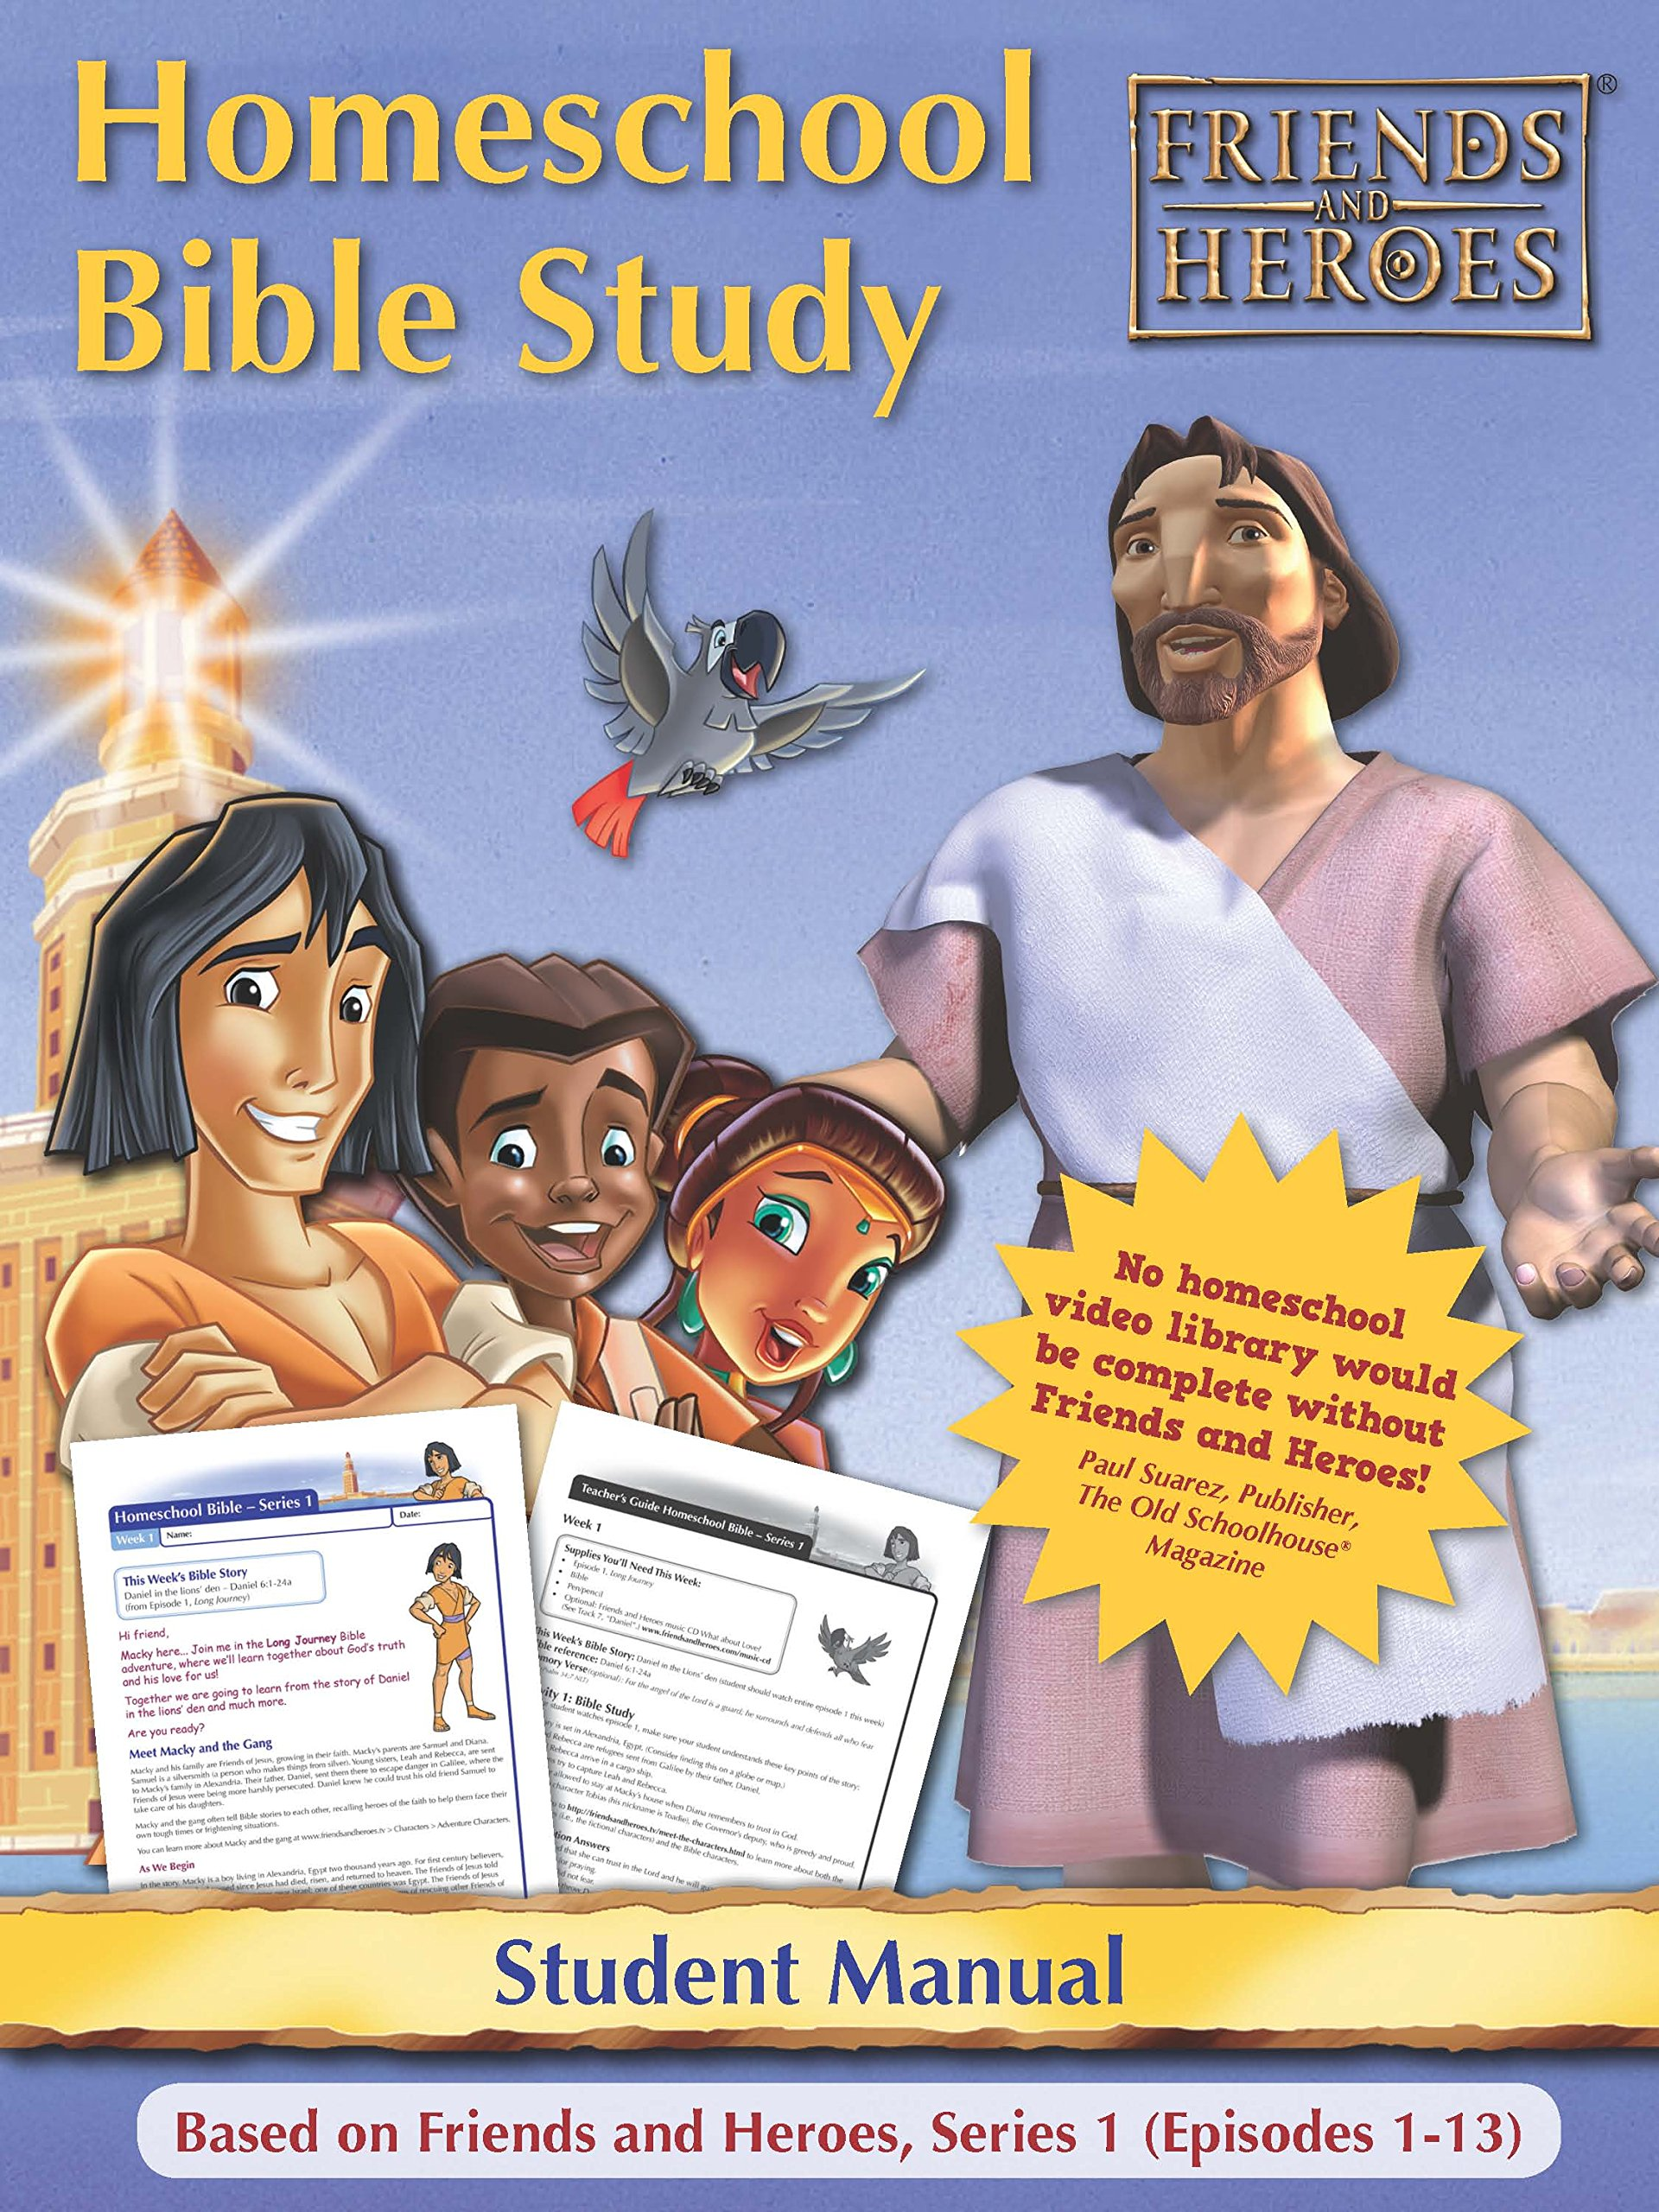 Friends and Heroes Series 1 Homeschool Bible Study Curriculum DVDs + CD-ROM by